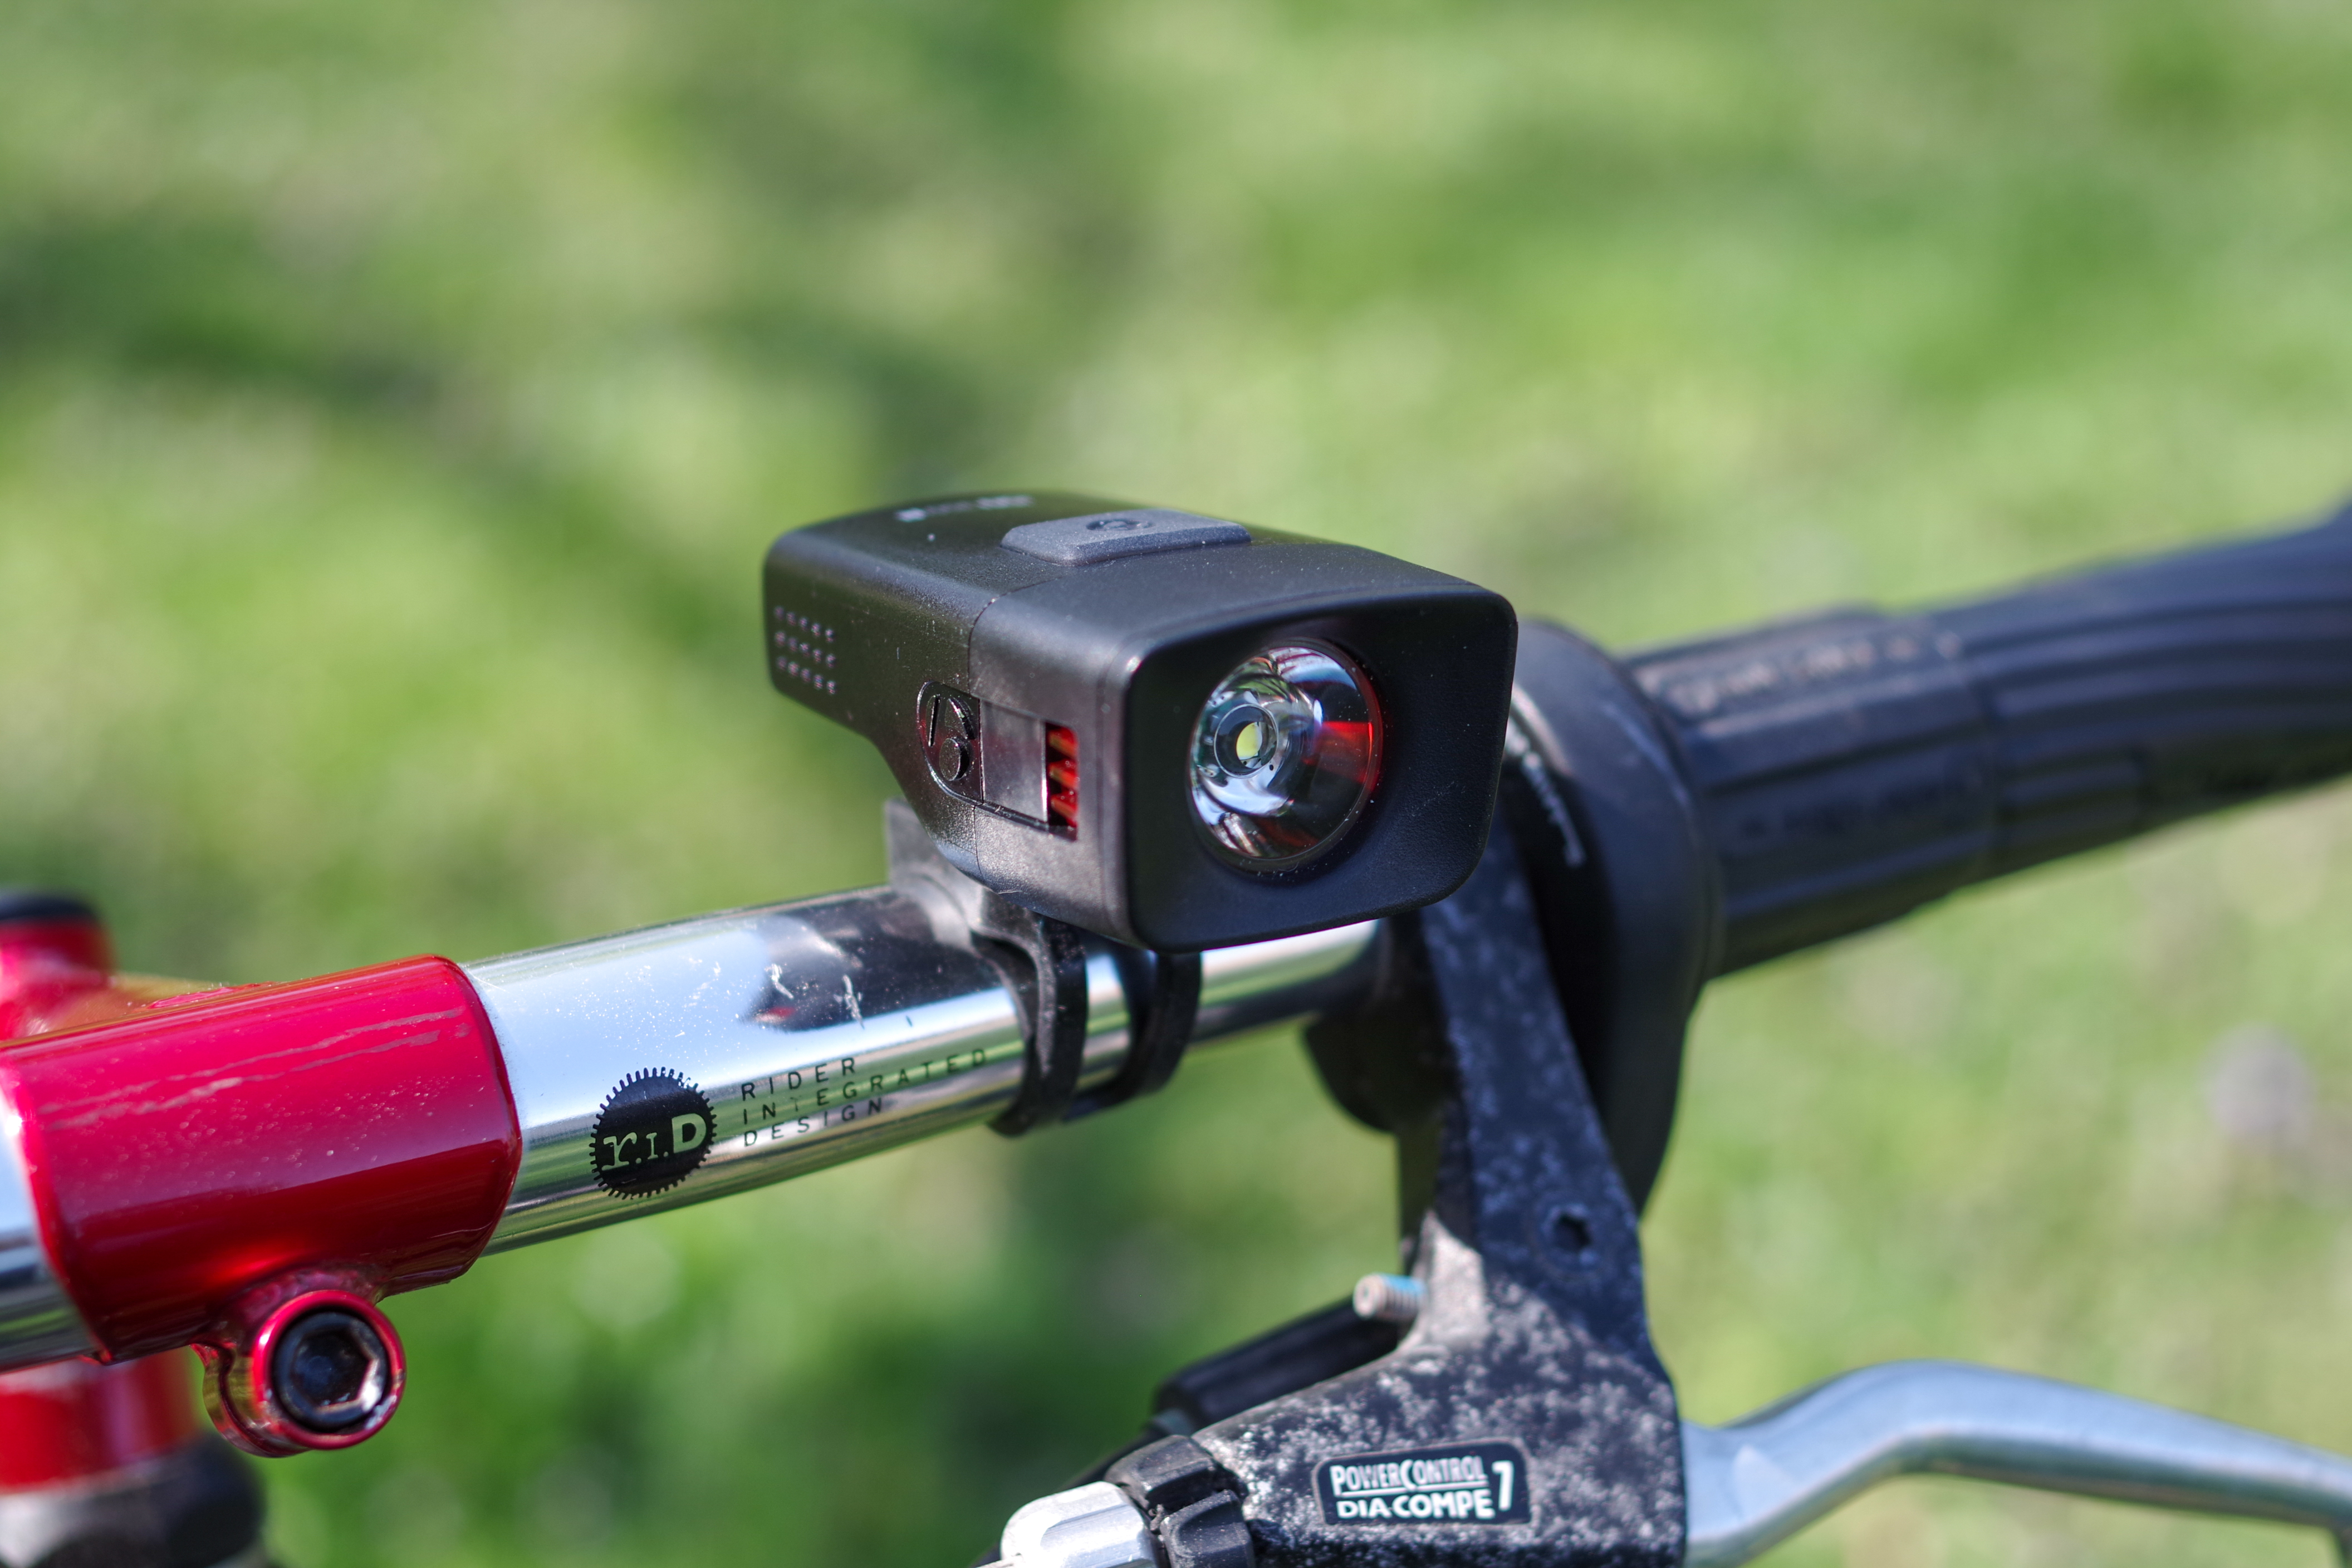 A bicycle headlight on the handle bars of a bicycle. This headlight and bicycle are available for rent through Jill + Ian's bicycle rentals. Photo © Jillian Regan 2018